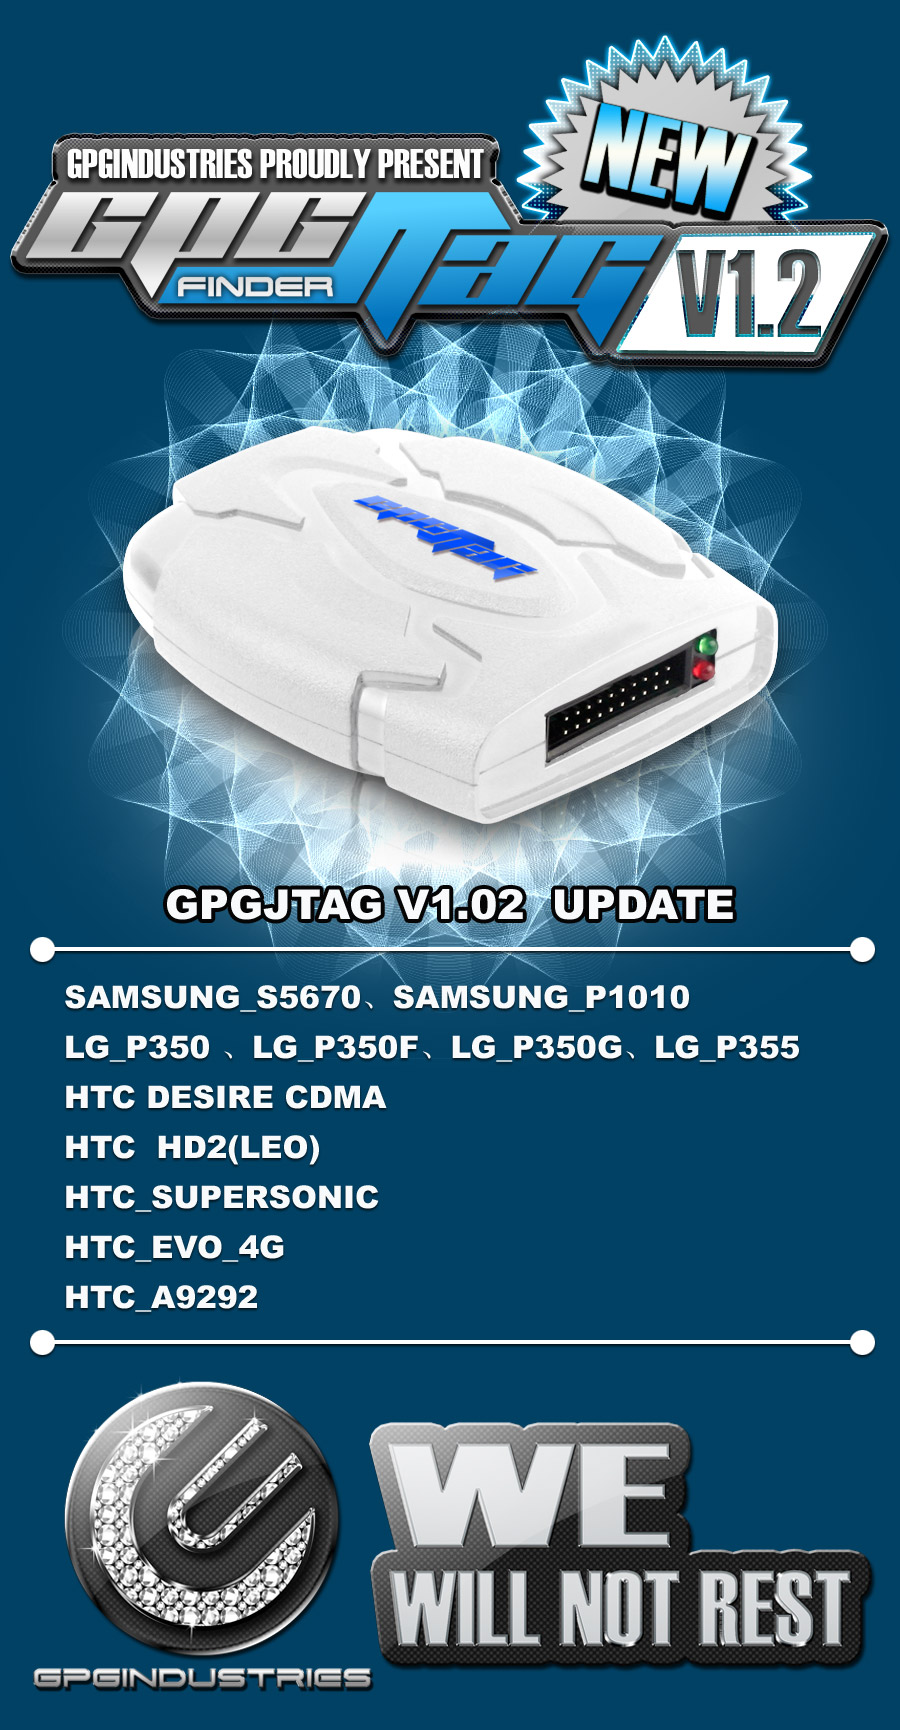 2011 11 21 GPGIndustries Proudly Present GPGJtag V102